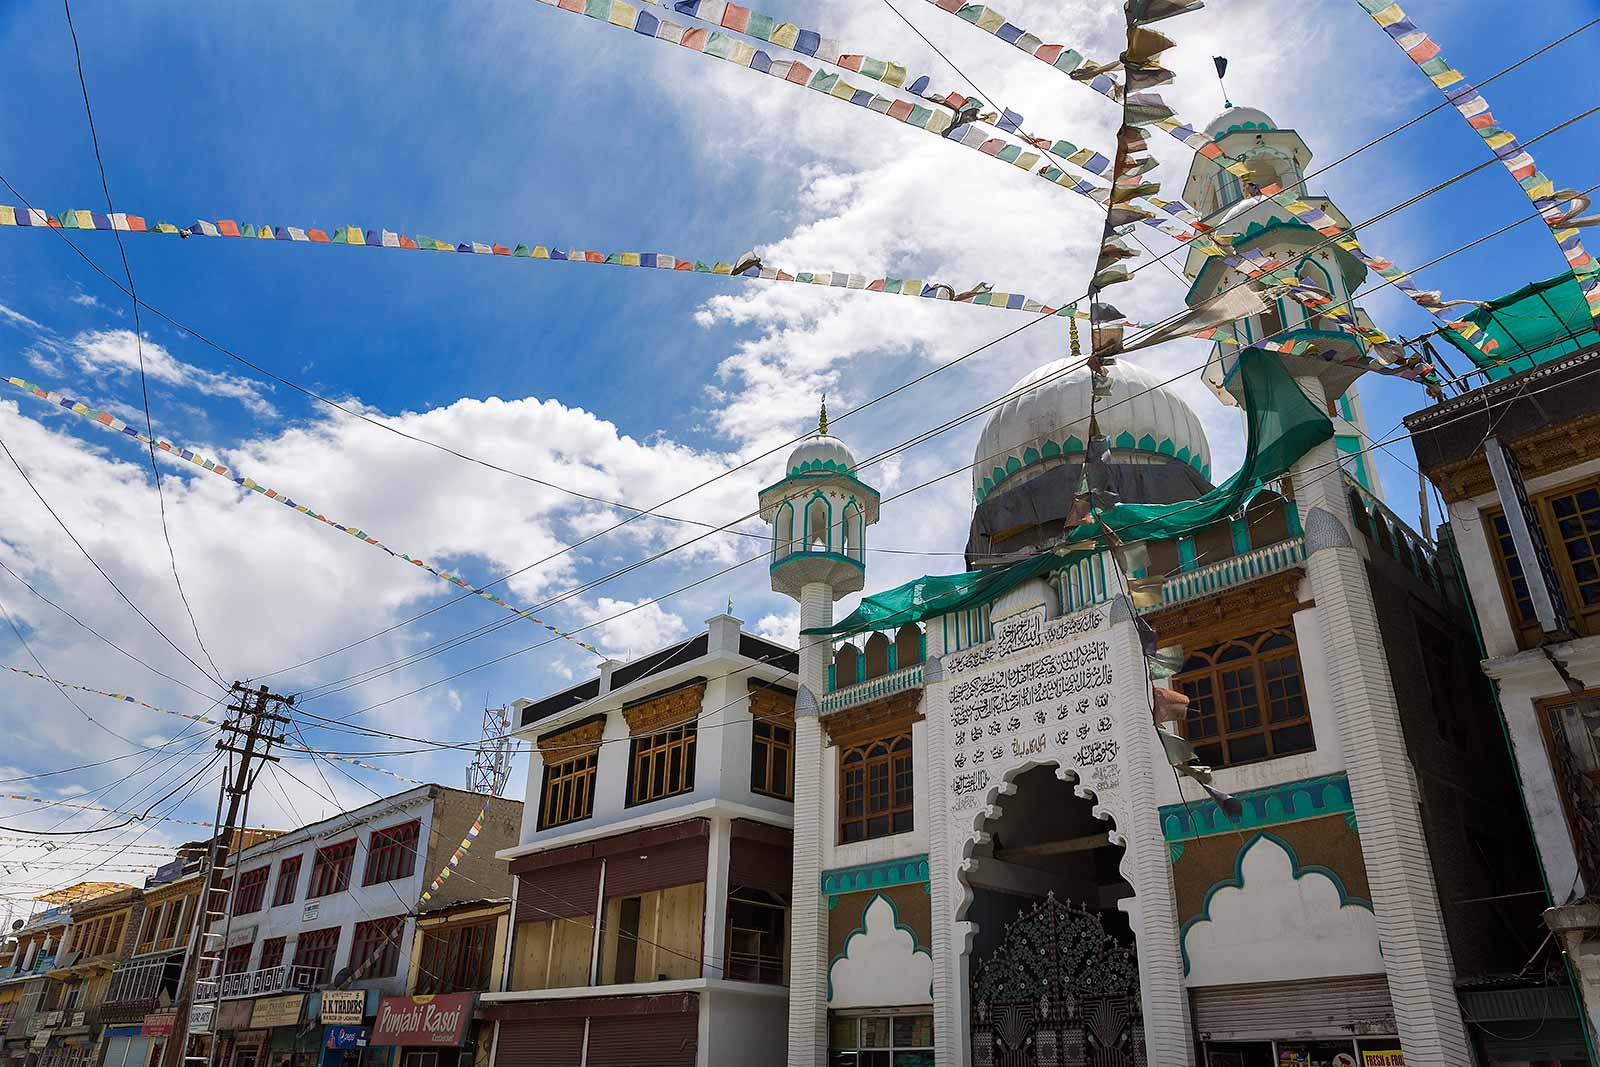 In Leh, it's the sights that act as a reminder of a spirit-centric population. There's a great sense of peace in Ladakh, built on religious tolerance and respect for other cultures.